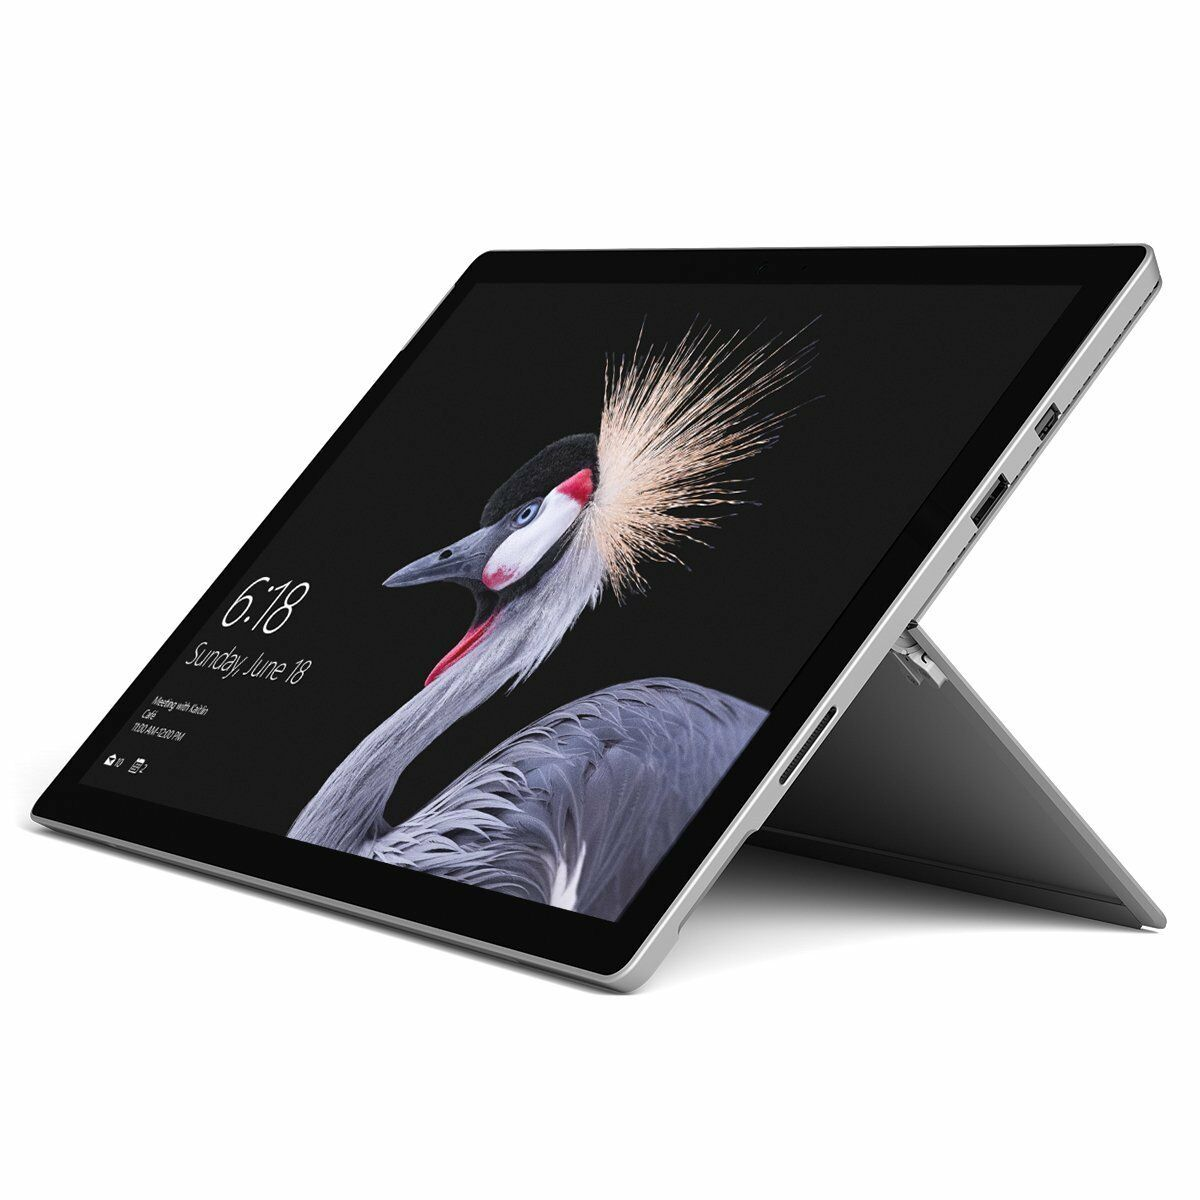 NEW Microsoft Surface Pro (newest version) Core i5 256GB SSD 8GB RAM FJY-00001